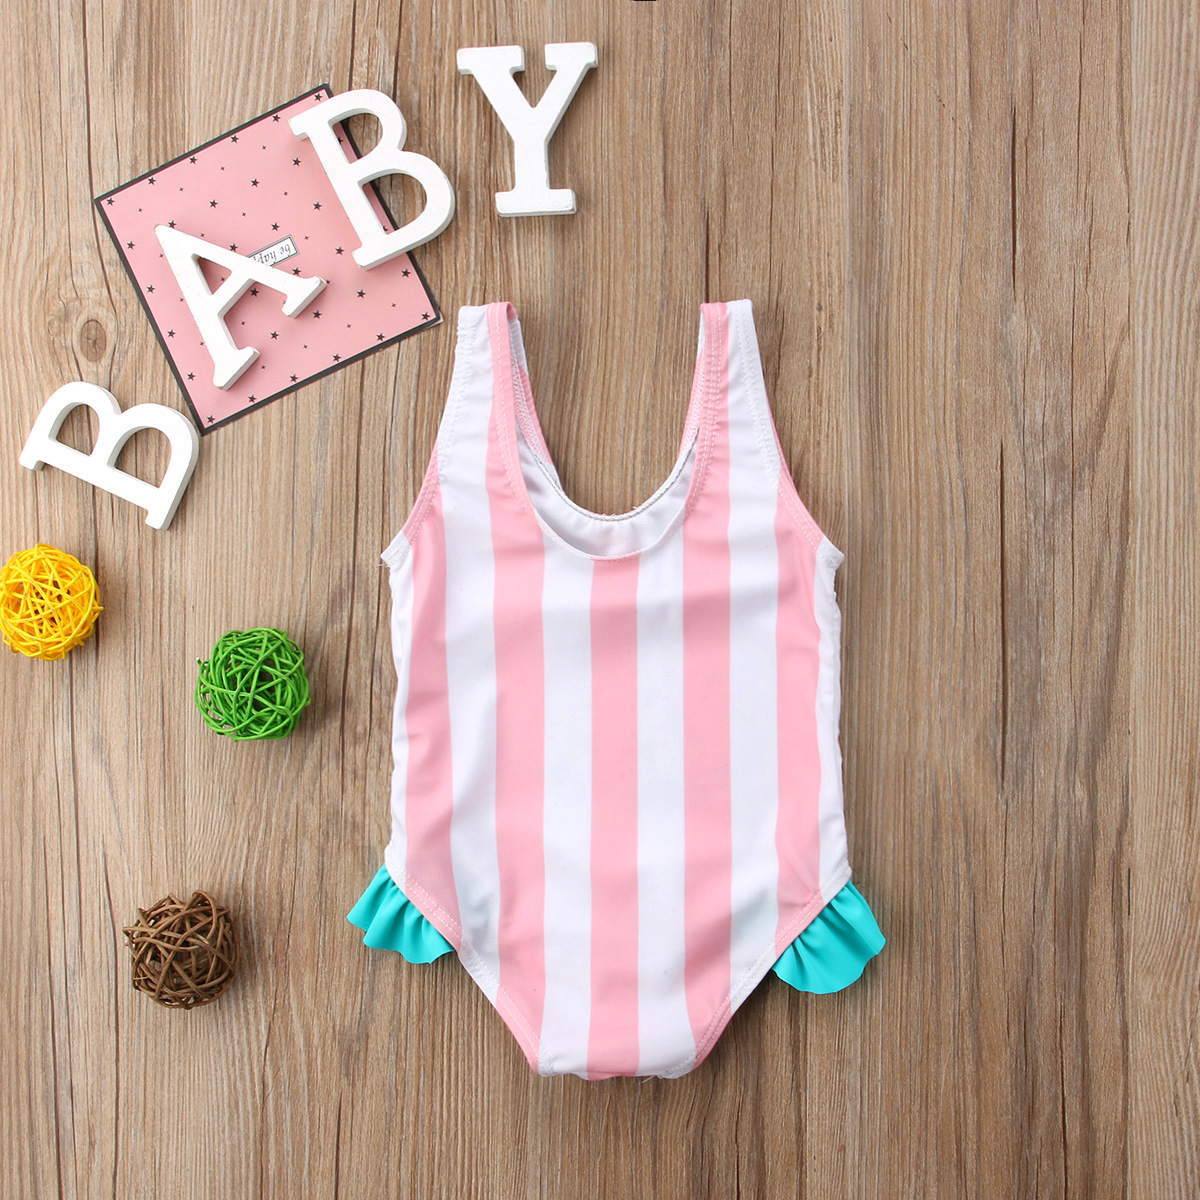 Toddler Newborn Baby Girls Watermelon Swimsuit Summer Baby Girl Beachwear Swimwear Bathing Suit